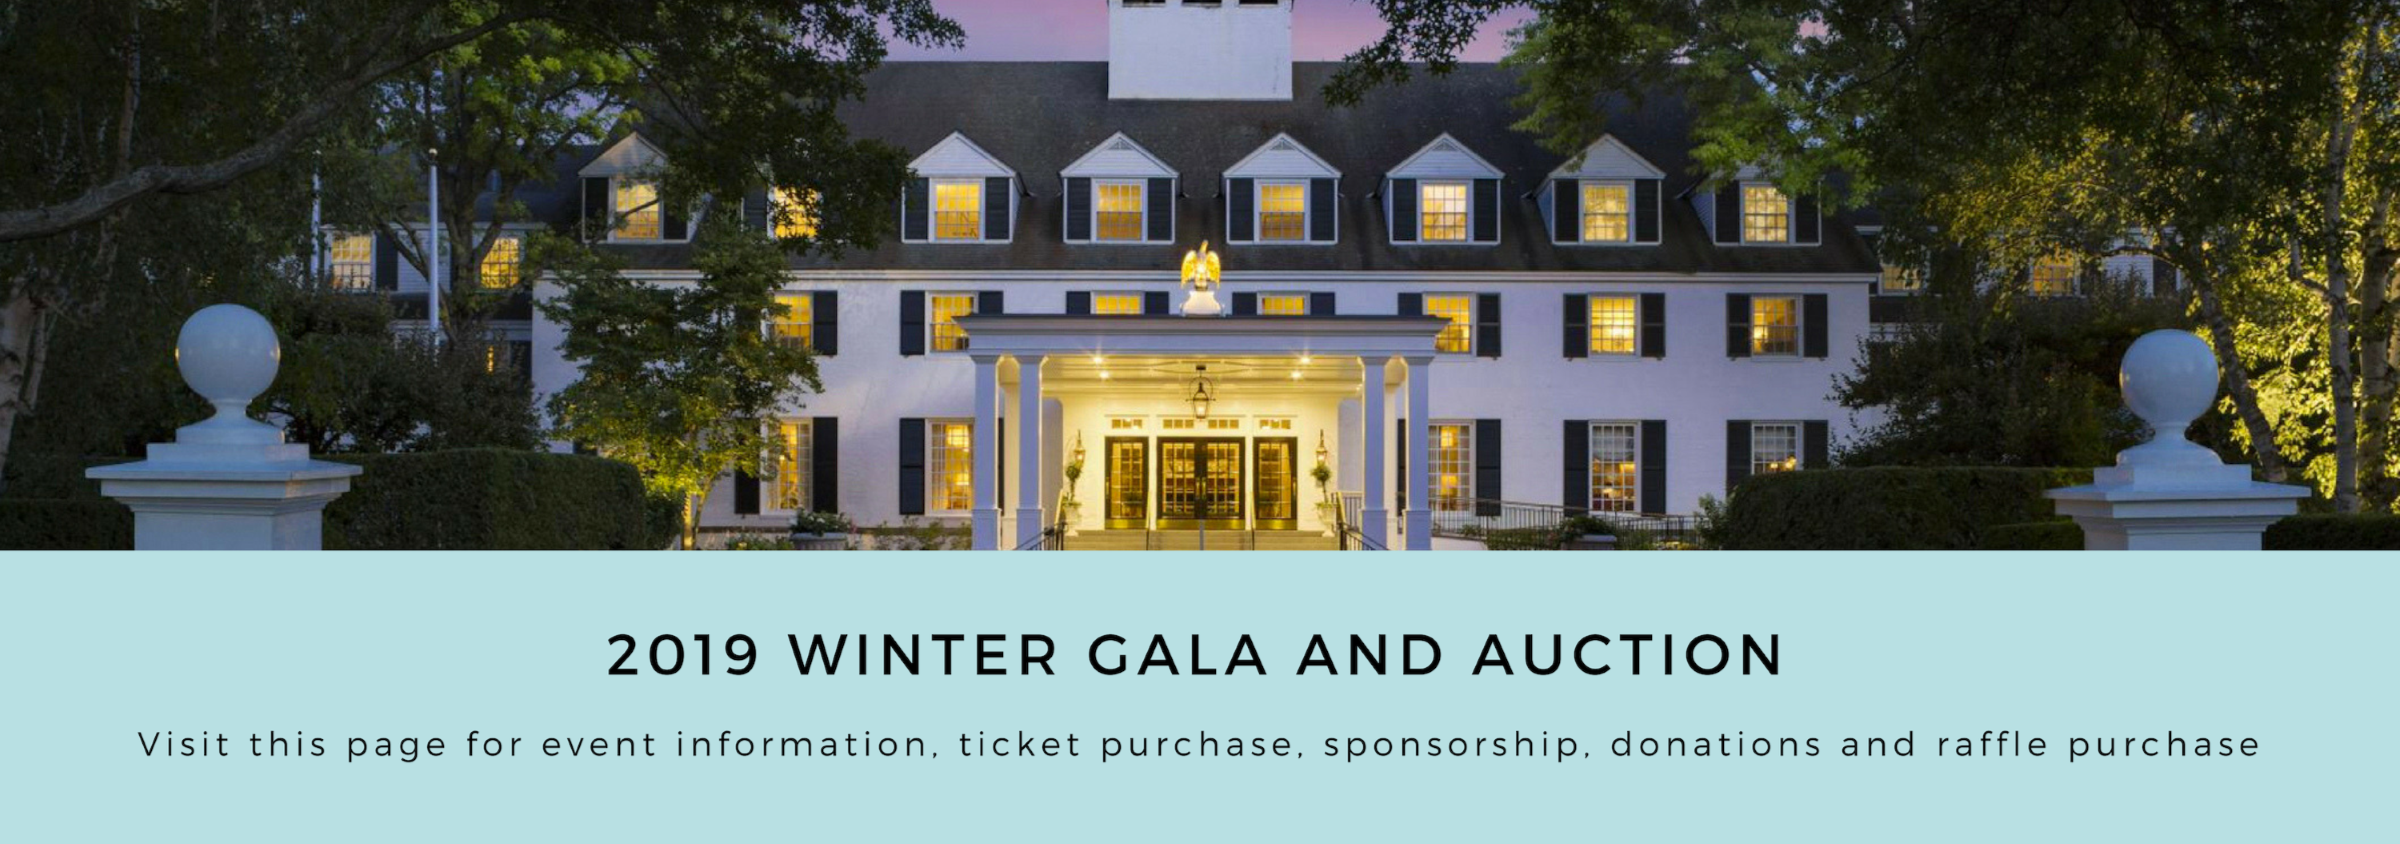 2019 Winter Gala slider image